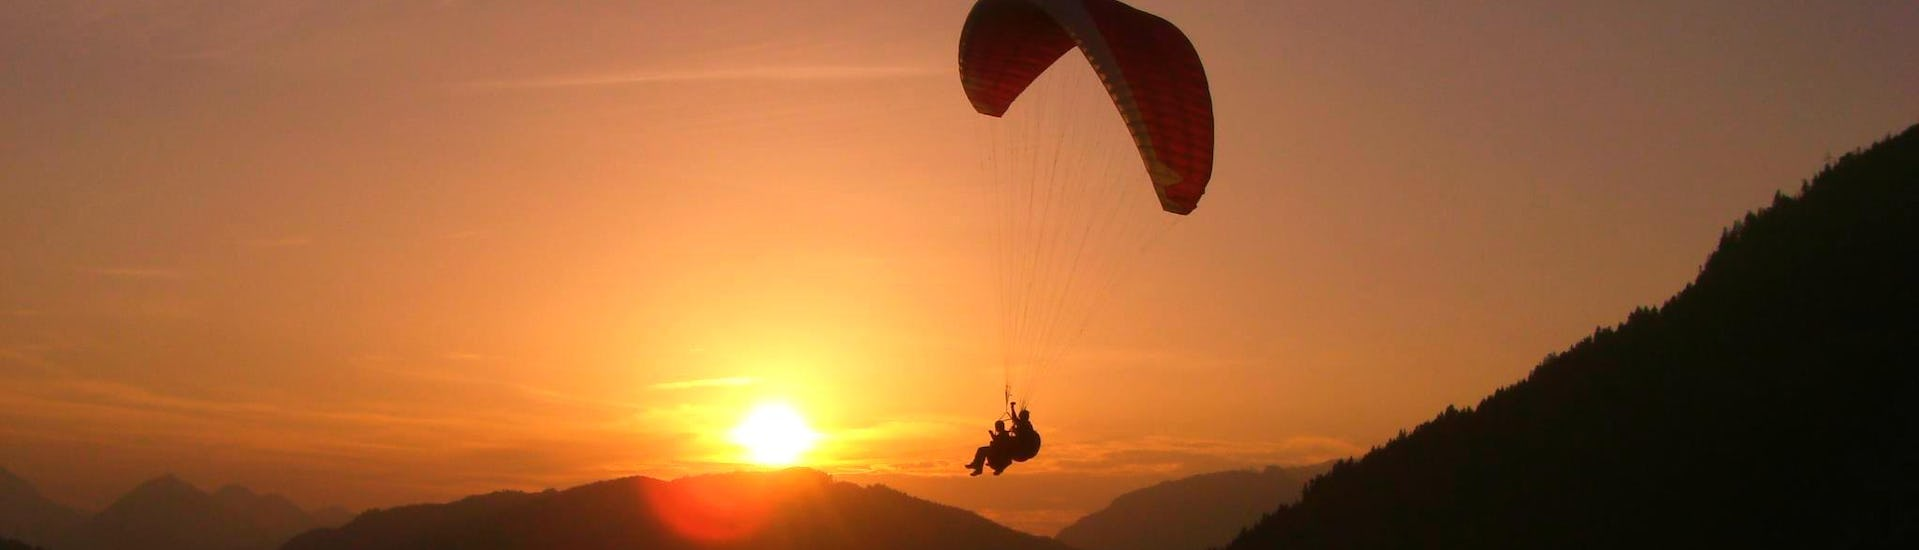 tandem-paragliding-panorama-flight-gerlitzen-fly-taxi-fun-fly-hero